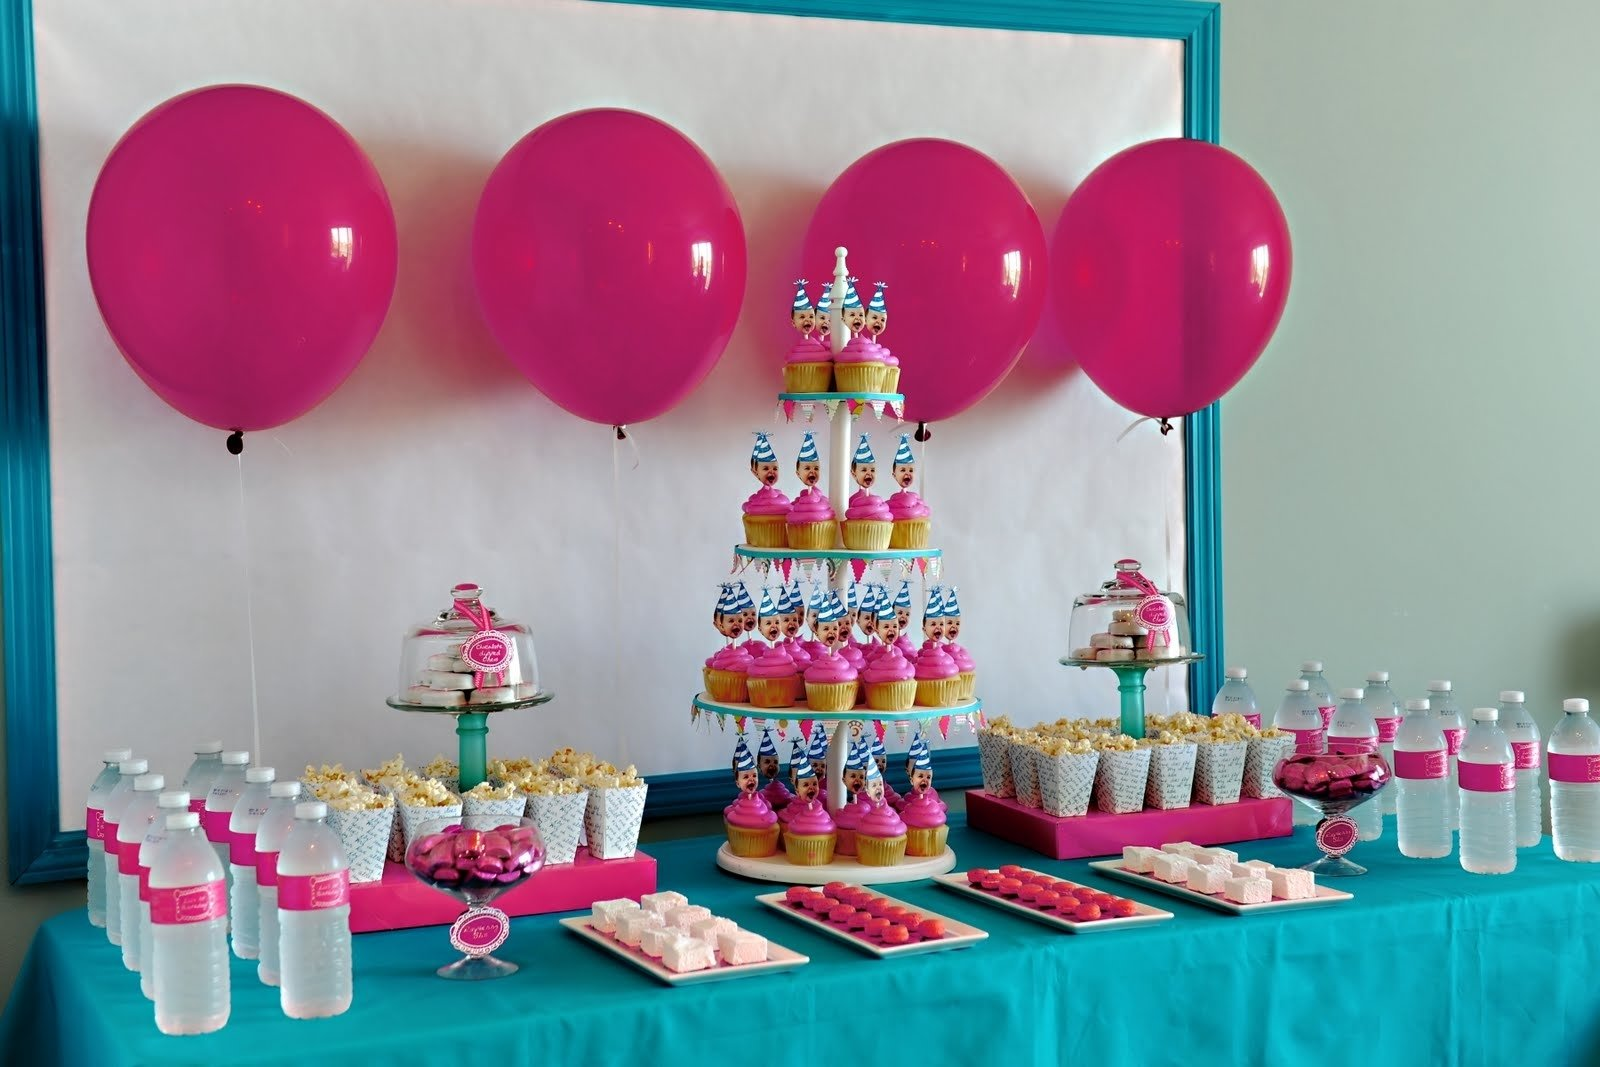 10 Cute Ideas For A 1 Year Old Birthday Party Themes Menu